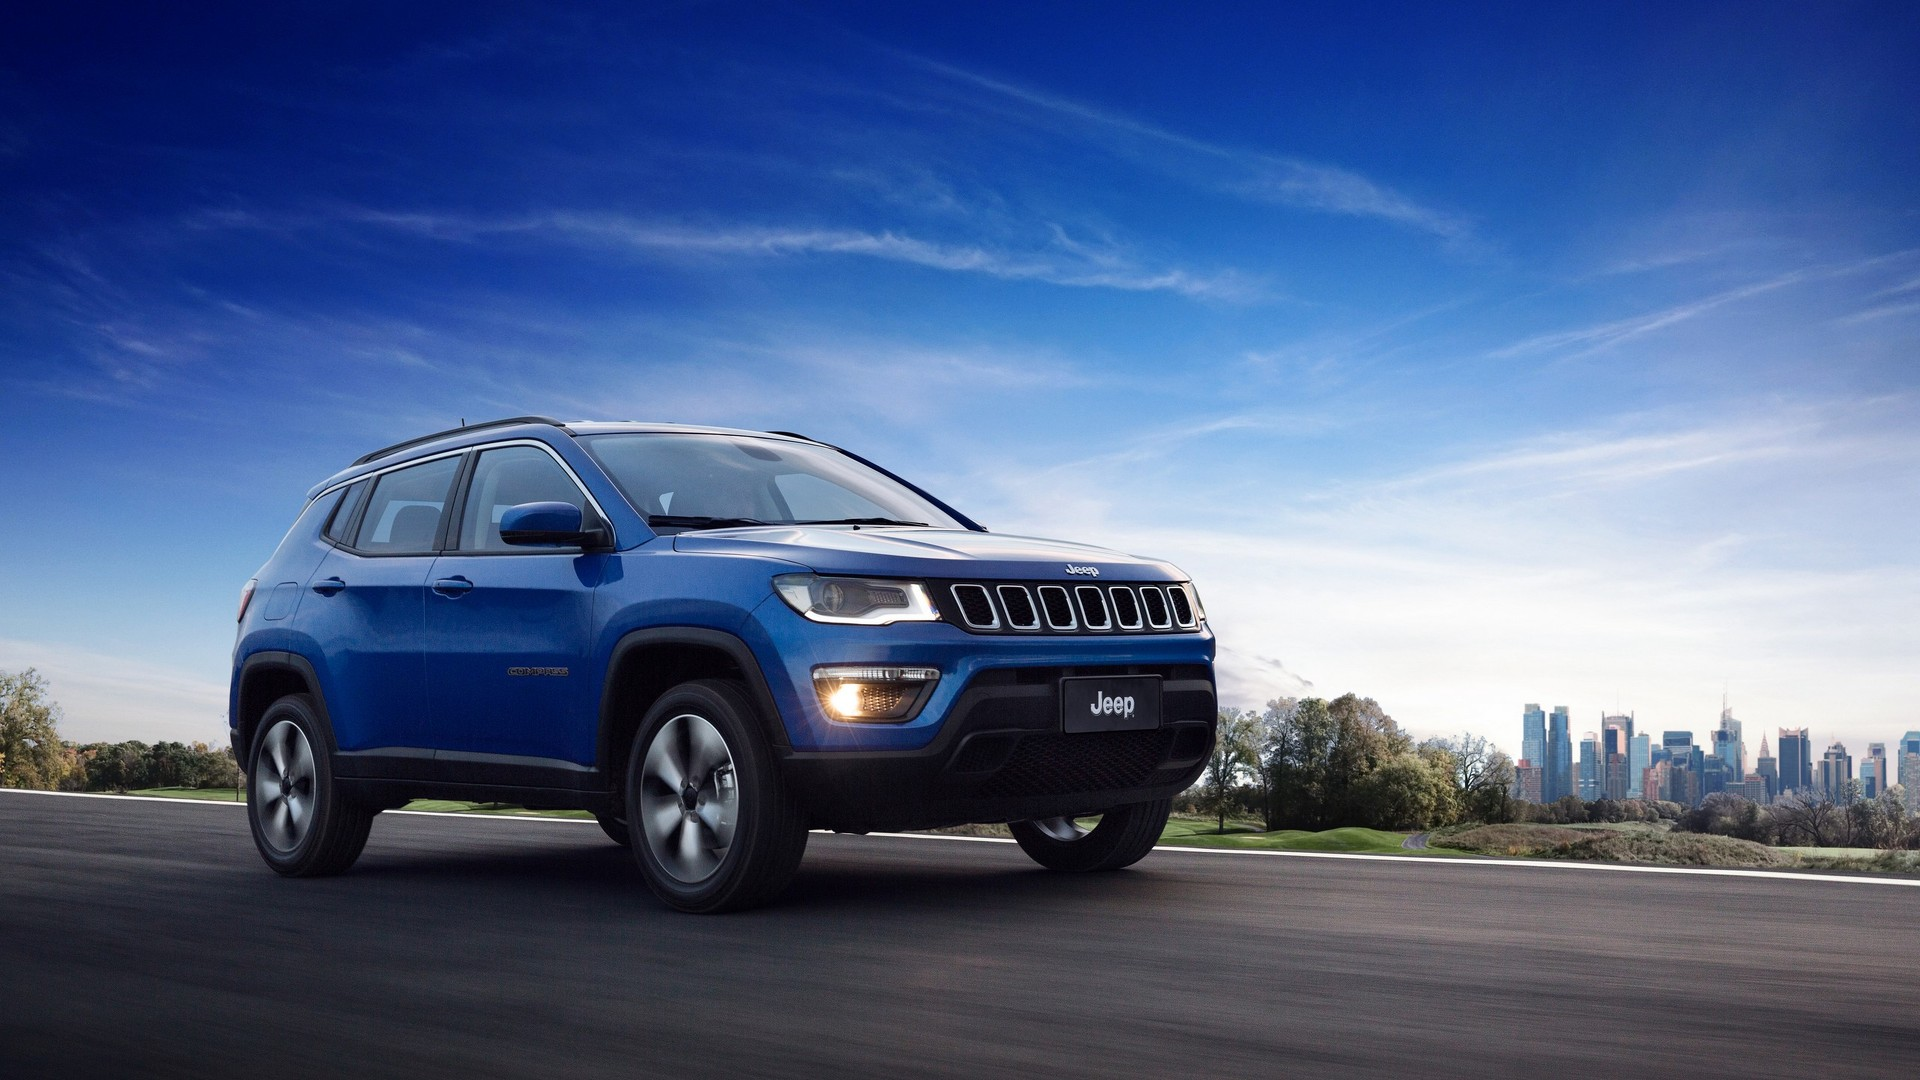 2017 Jeep Compass Officially Revealed [UPDATE: 57 Photos